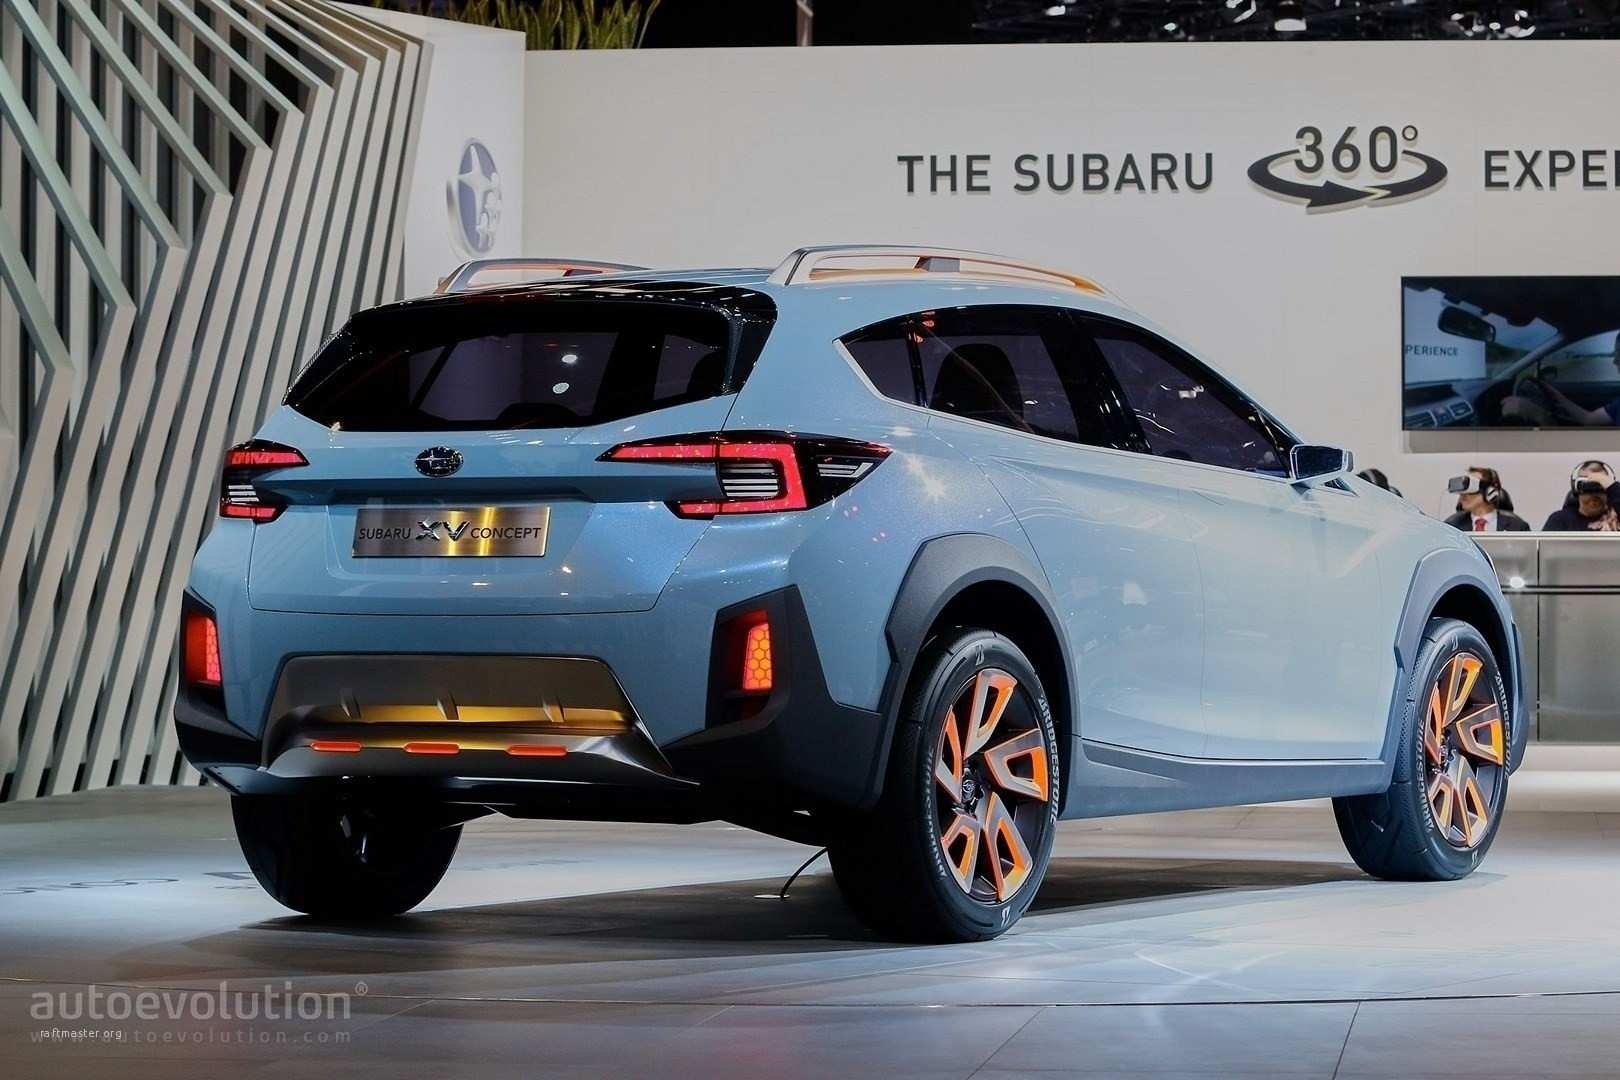 73 Best Review New Subaru Crosstrek 2019 Review Redesign And Concept Pricing with New Subaru Crosstrek 2019 Review Redesign And Concept